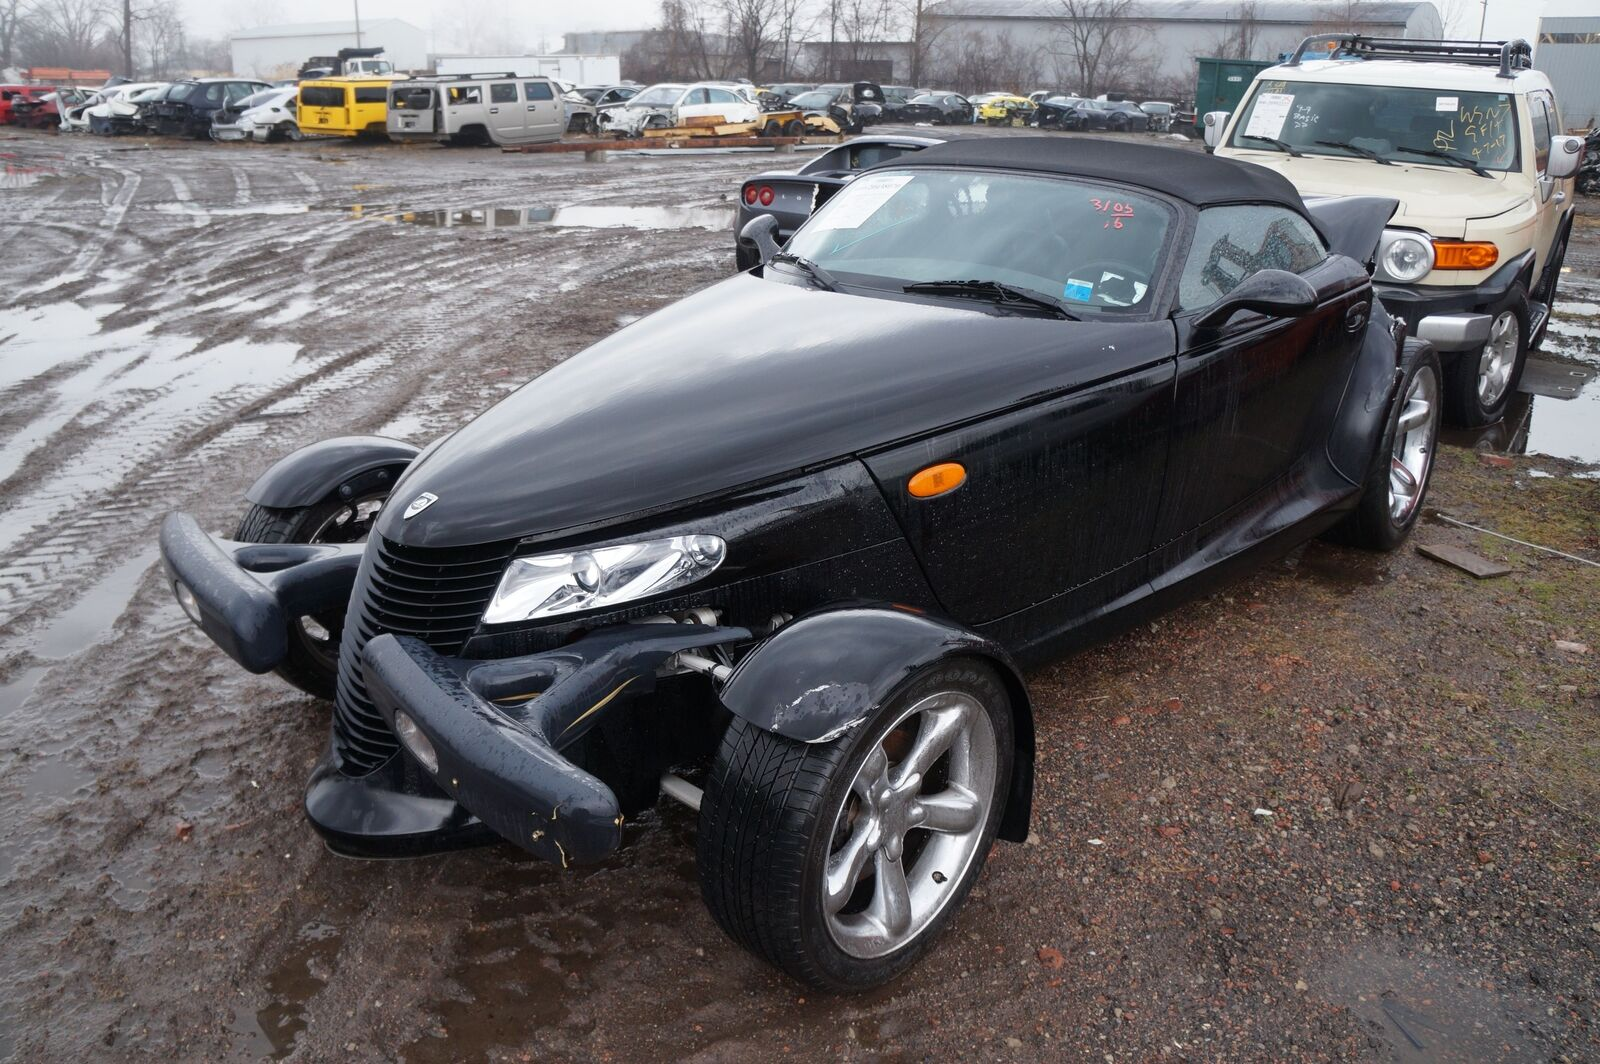 plymouth prowler wiring diagram wiring diagrams lol chrysler concorde wiring diagrams plymouth prowler fuse box wiring diagram g9 dodge nitro wiring diagrams plymouth prowler wiring diagram